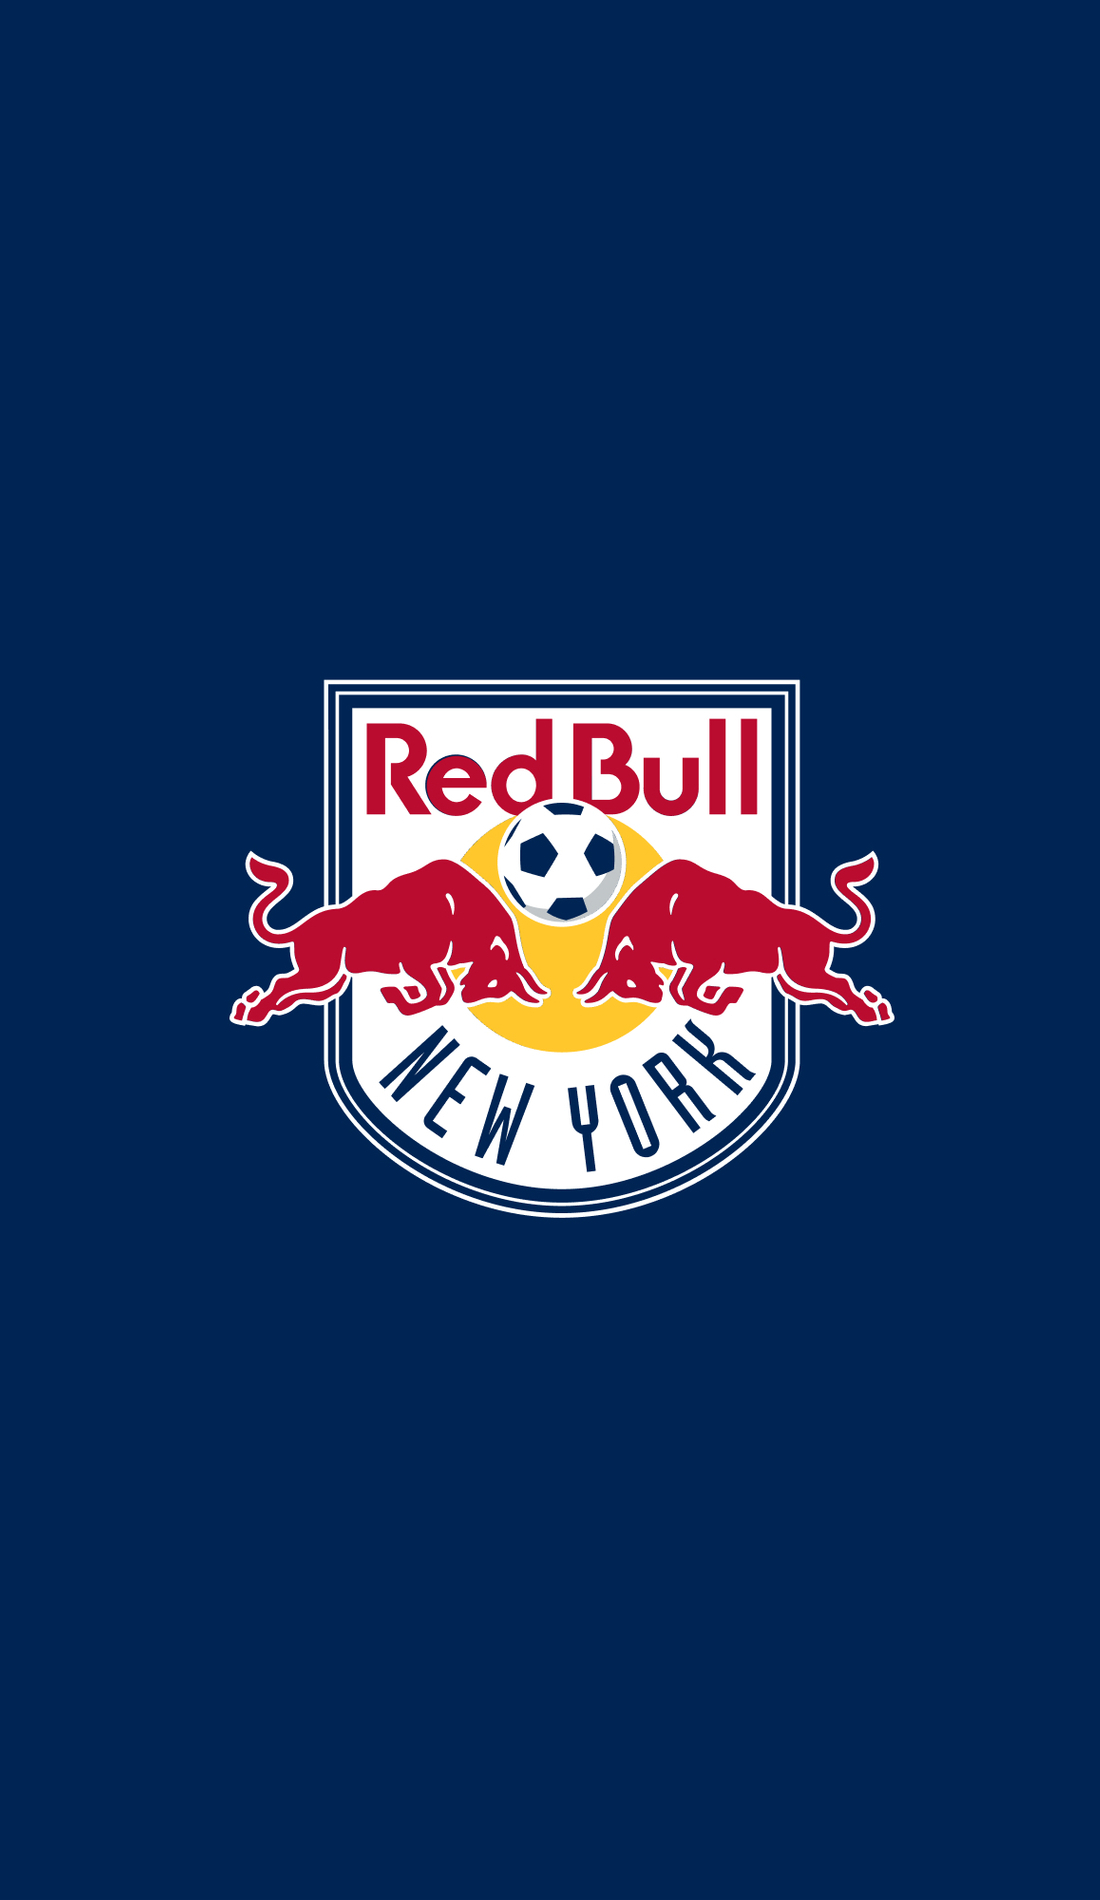 A New York Red Bulls live event